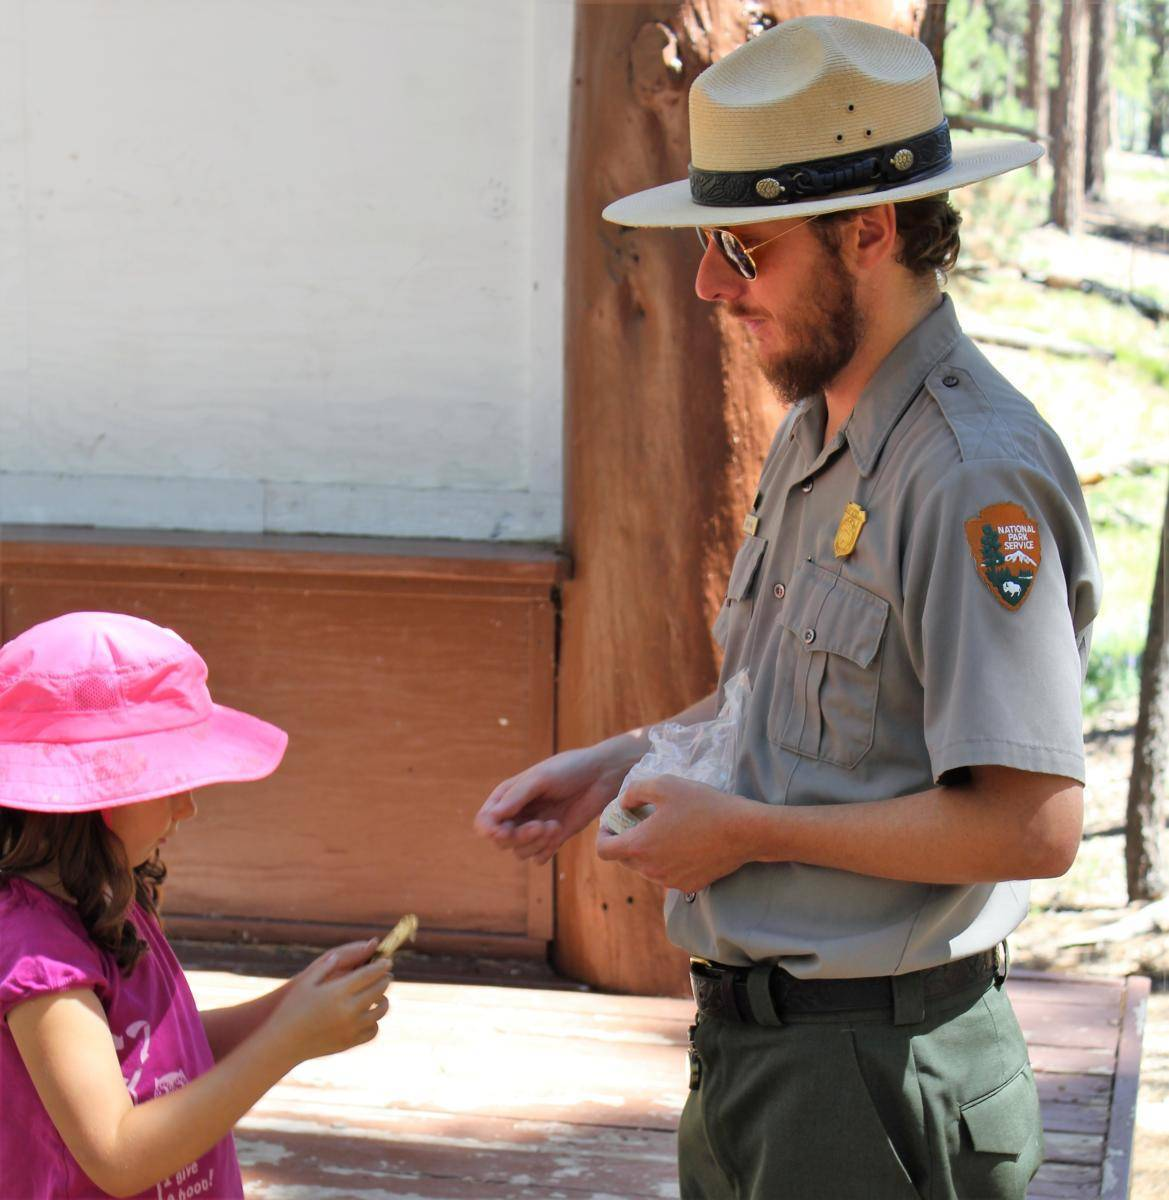 North Rim Junior Ranger